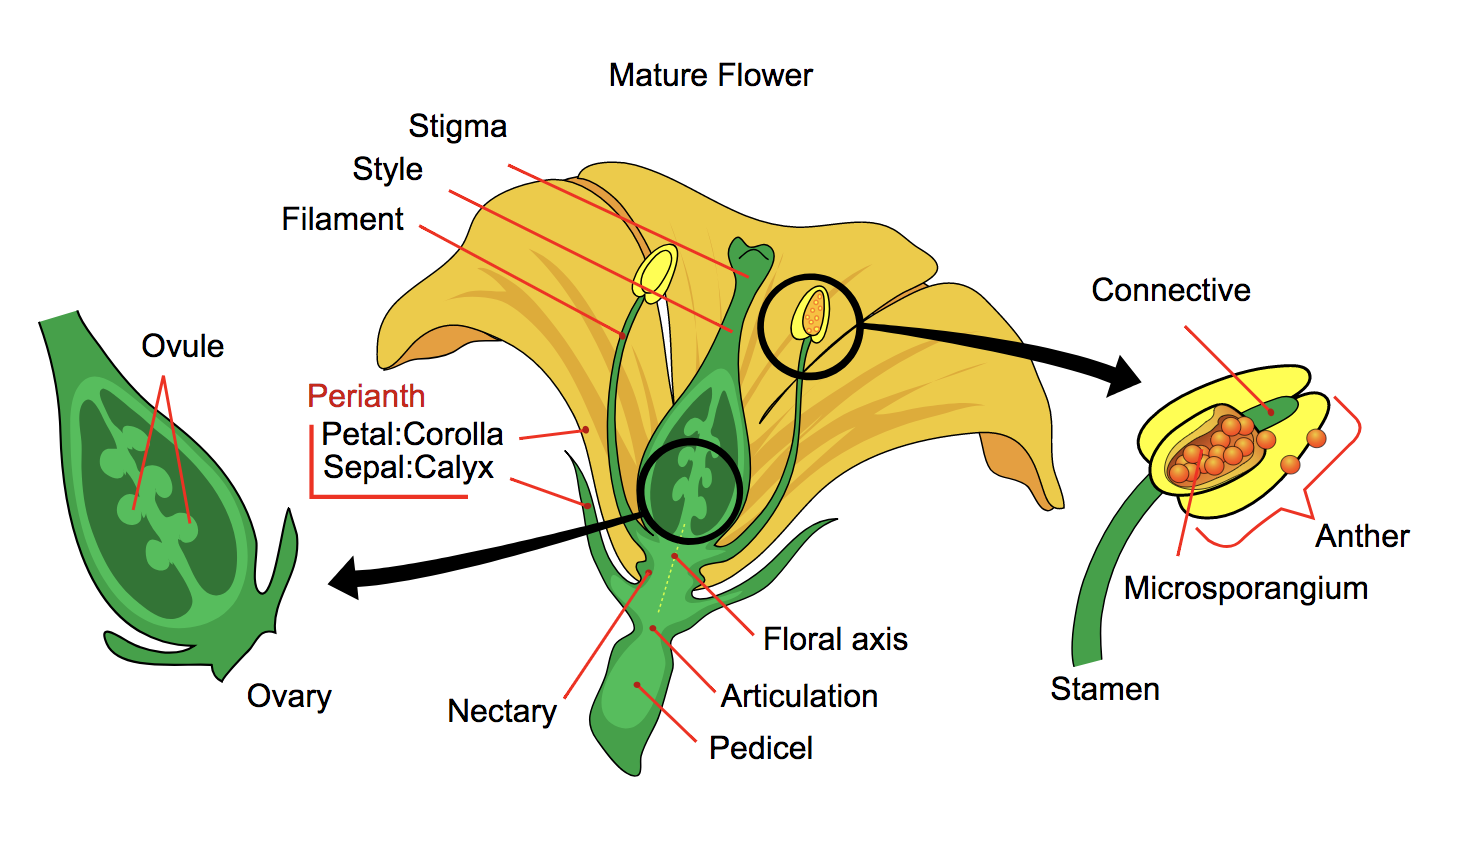 Teaching Science With Lynda: Dissecting a Flower to Teach ...